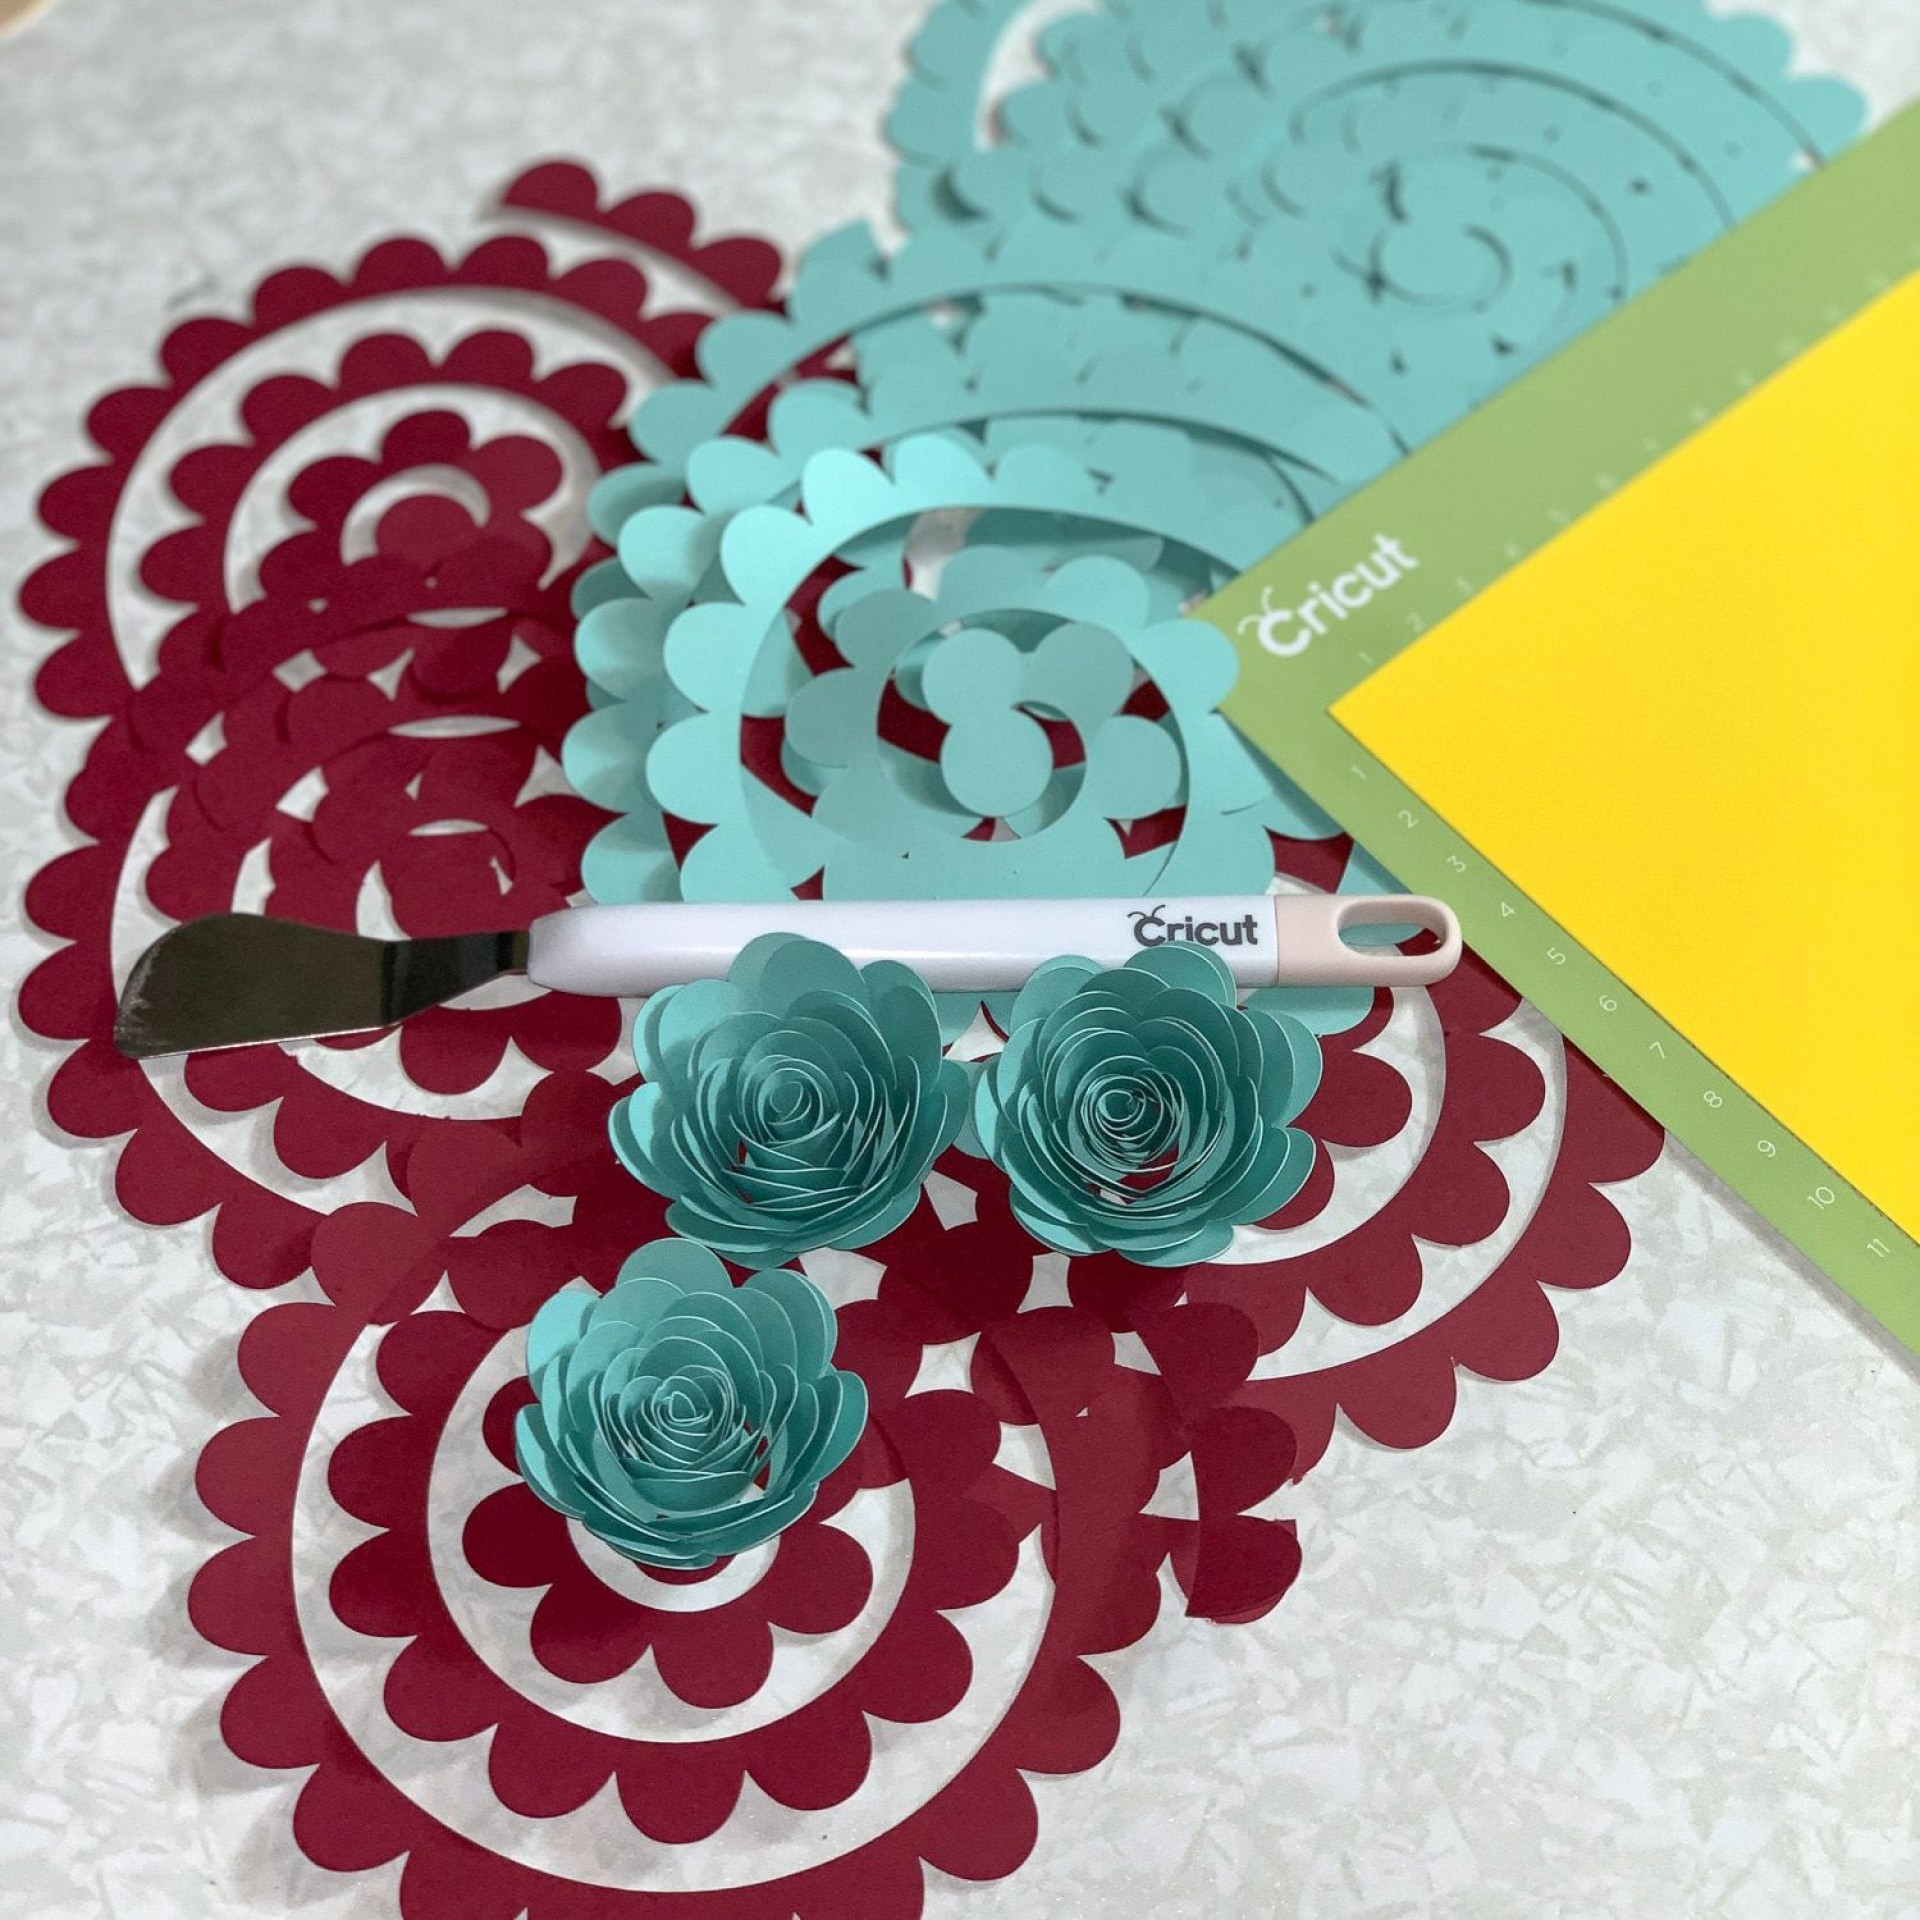 008 Awesome Free Rolled Paper Flower Template For Cricut Example 1920